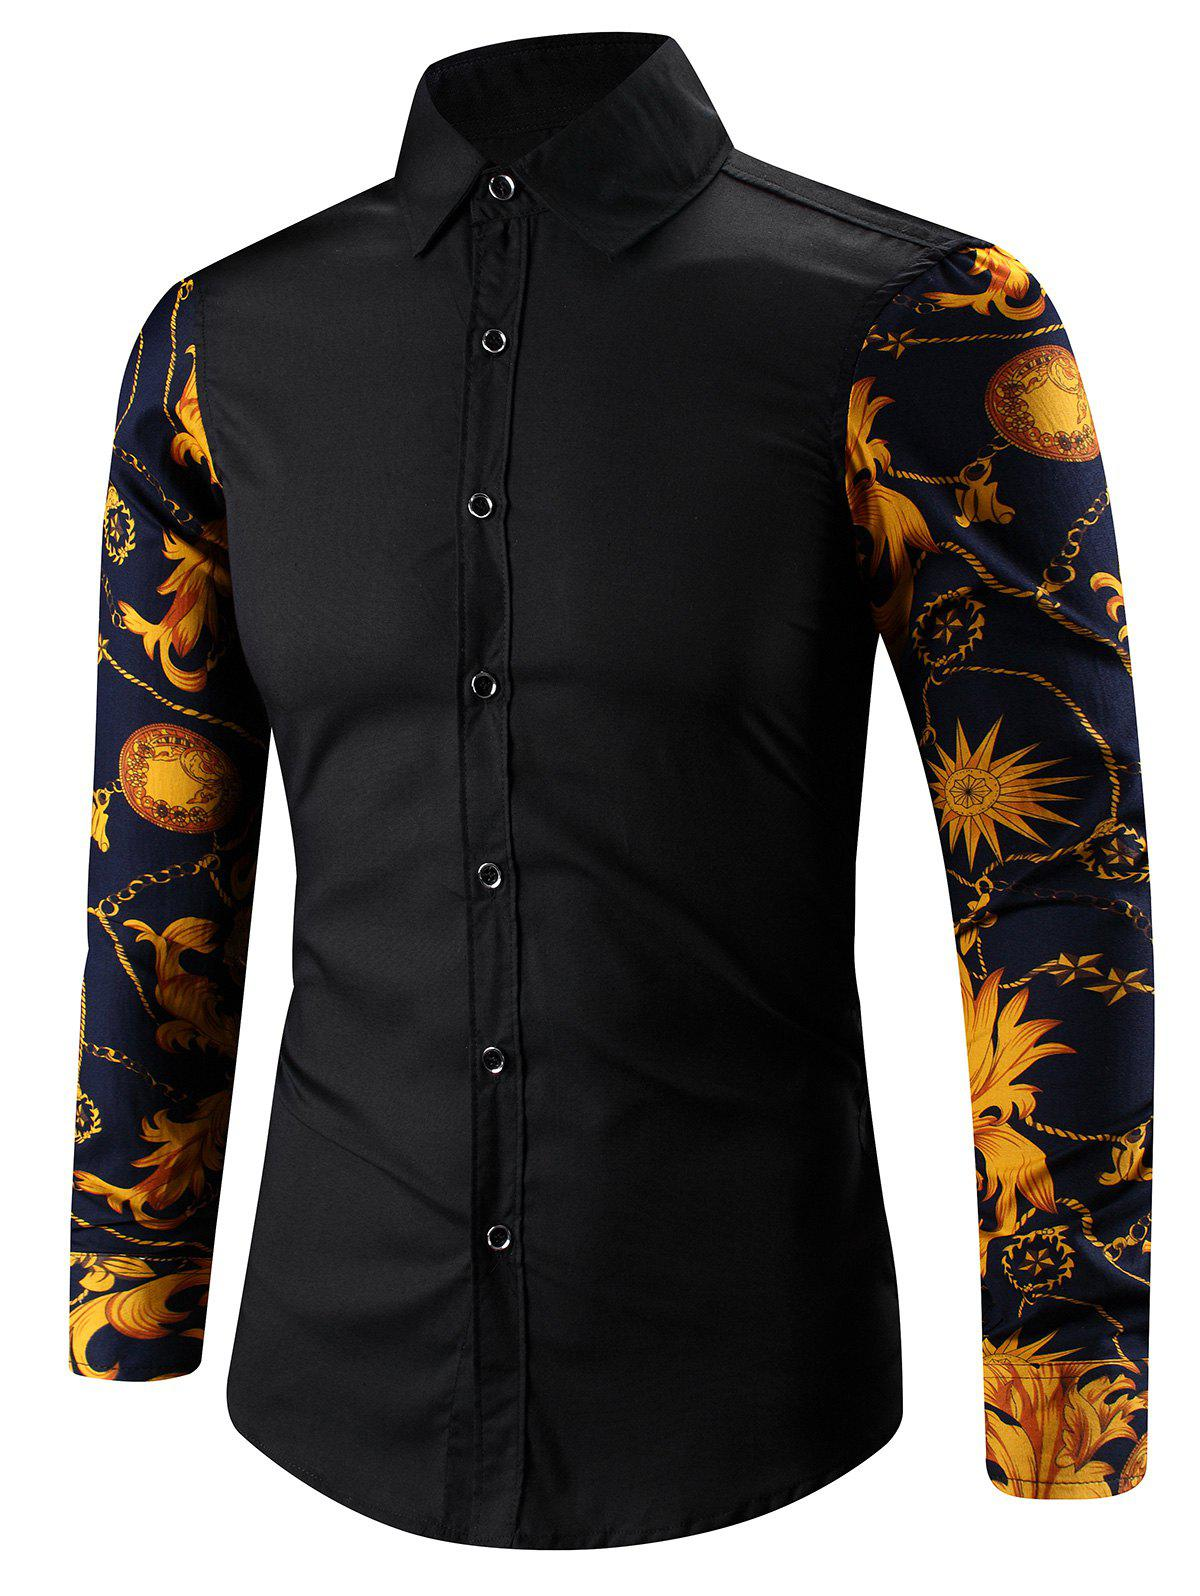 3D Abstract Floral Print épissage Turn-Down Collar Shirt - Noir 5XL